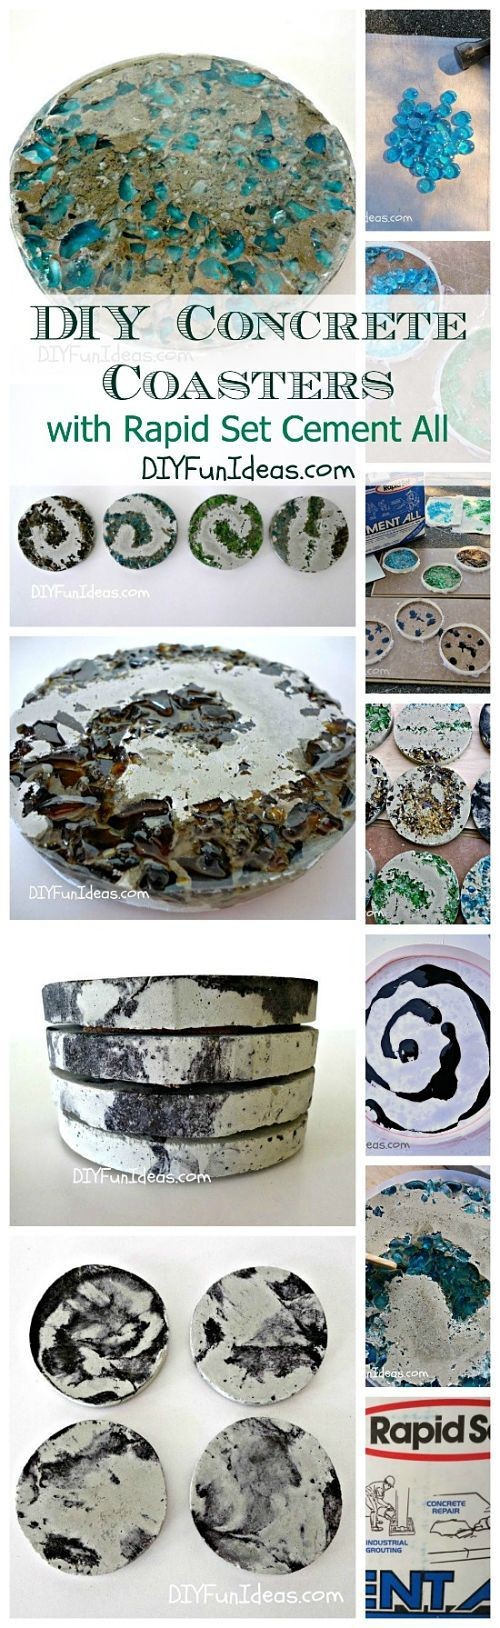 18 best concrete projects images on pinterest concrete projects how to make crushed glass tie dyed concrete coasters with rapid set cement all concrete craftsconcrete cementconcrete projectsconcrete plantersdiy solutioingenieria